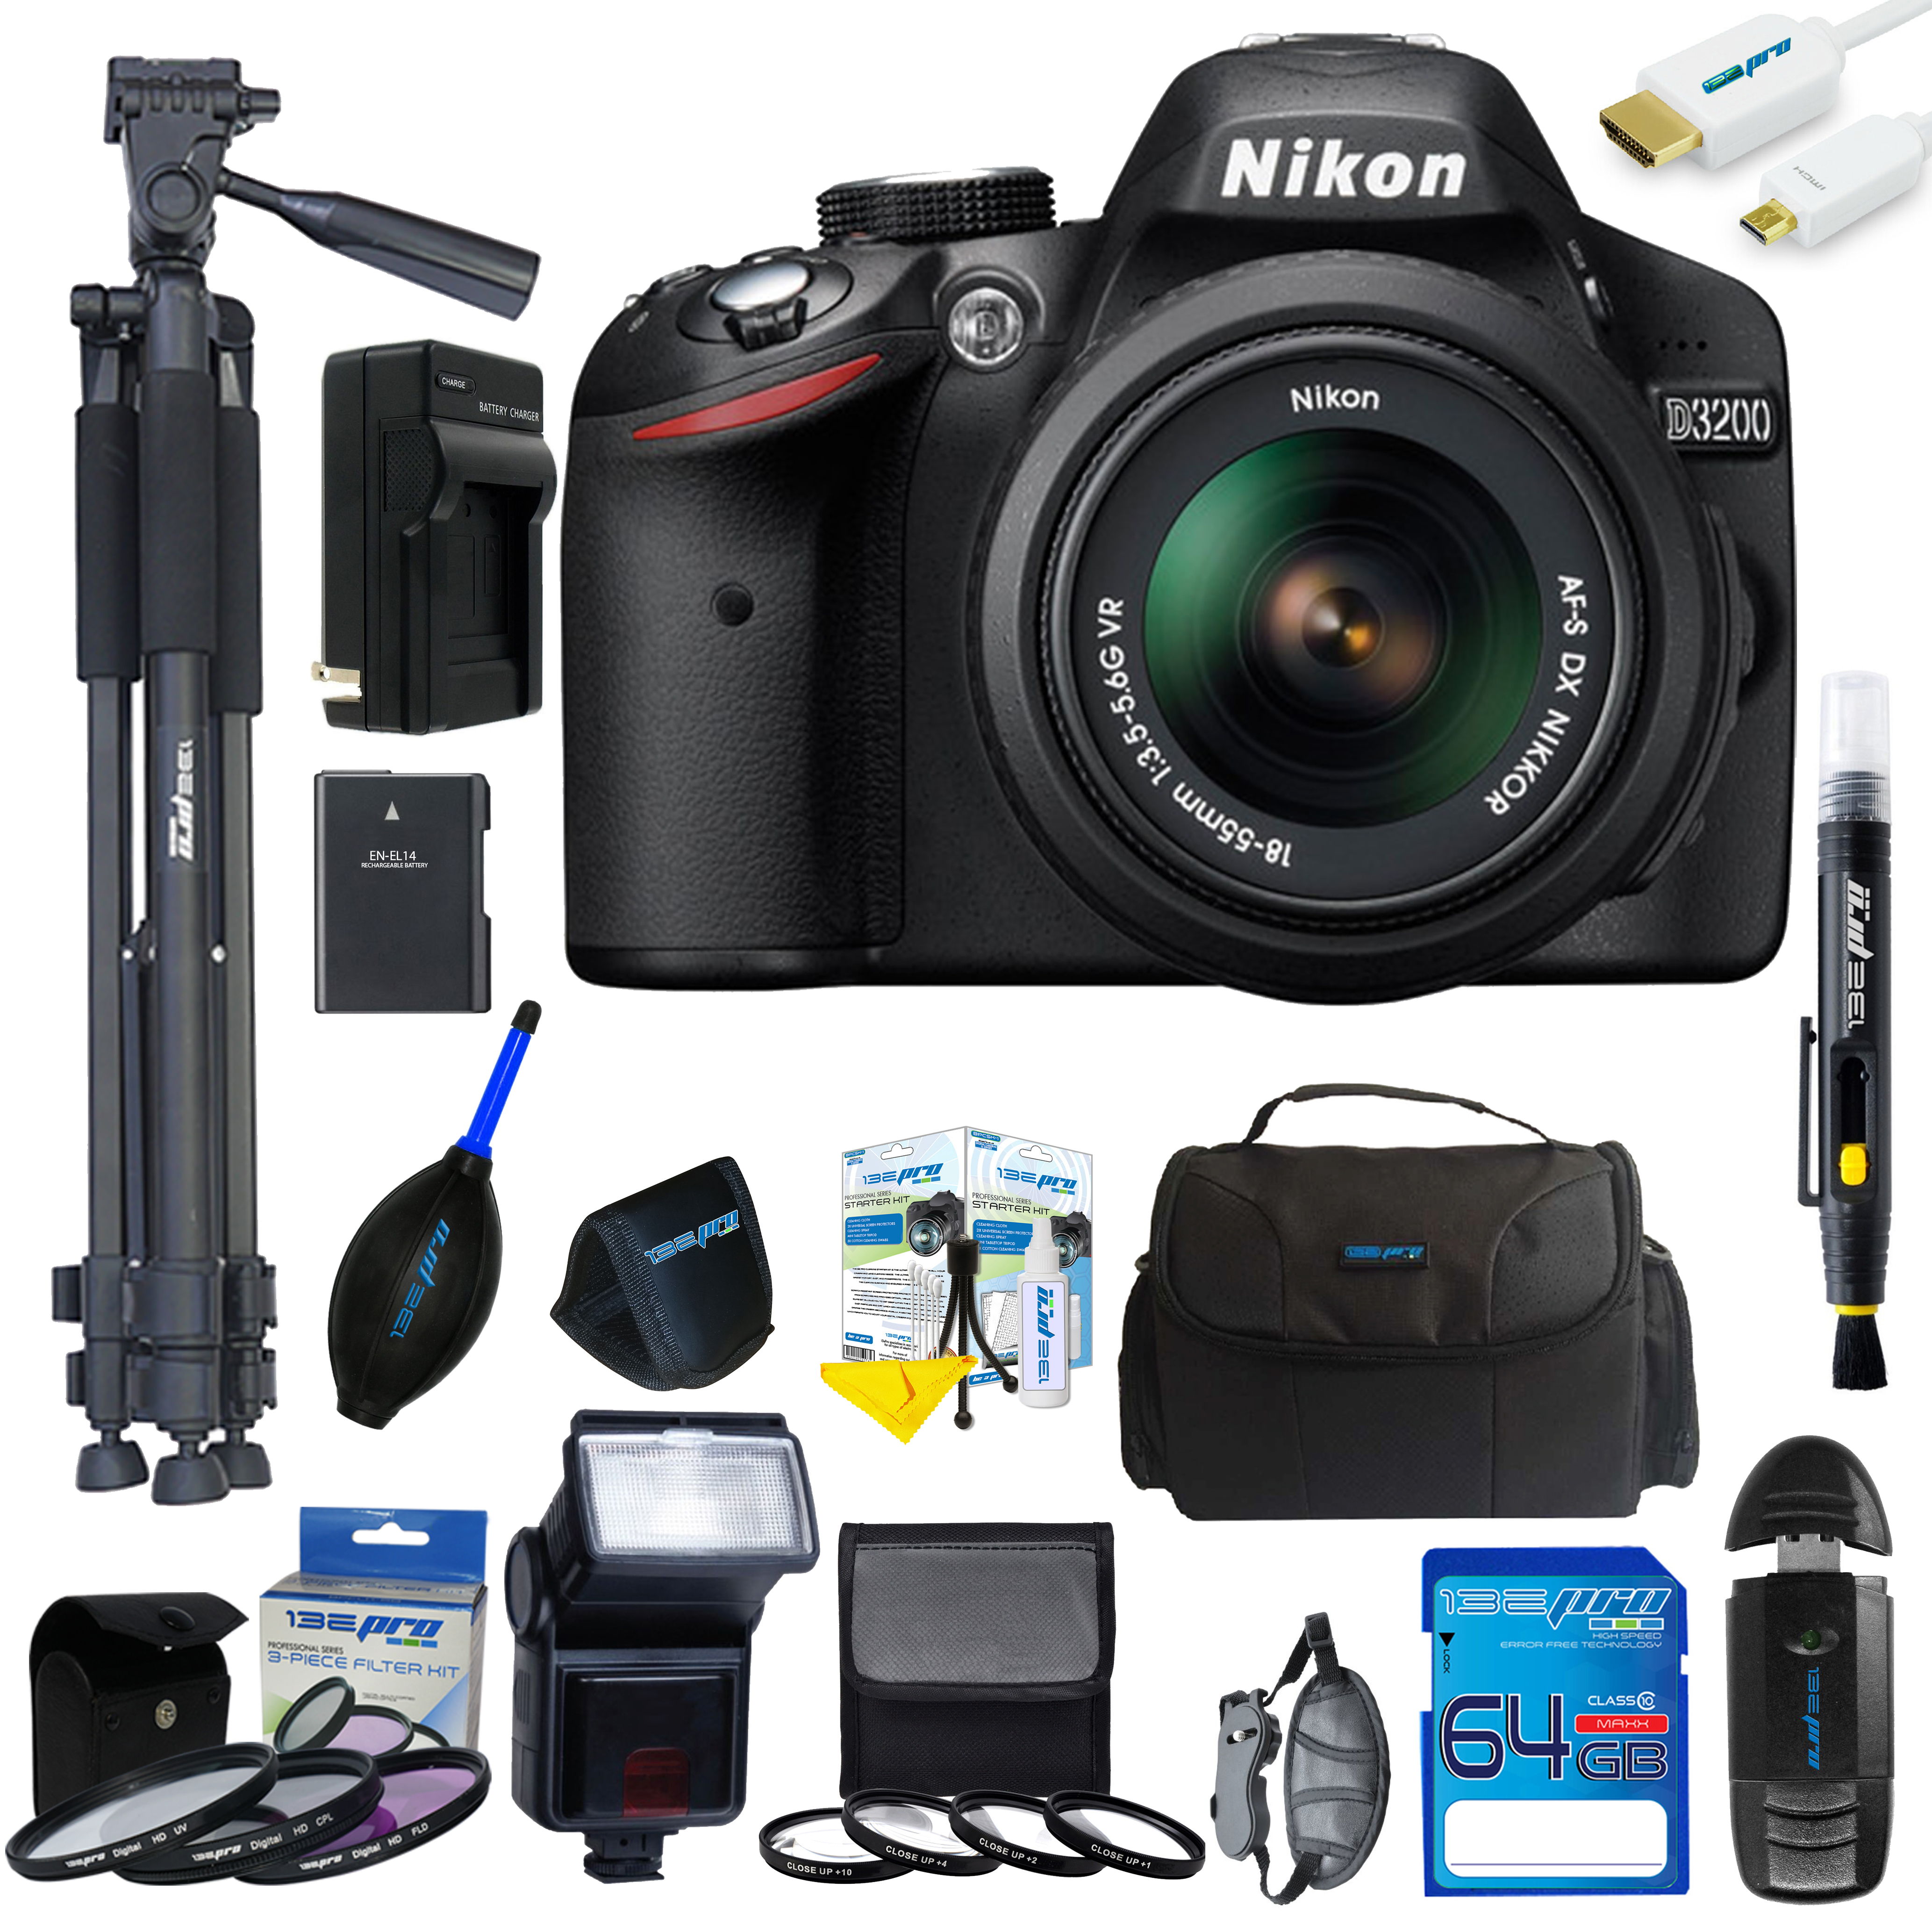 Nikon D3200 DSLR Camera with 18-55mm Lens + Pixi Pro Kit